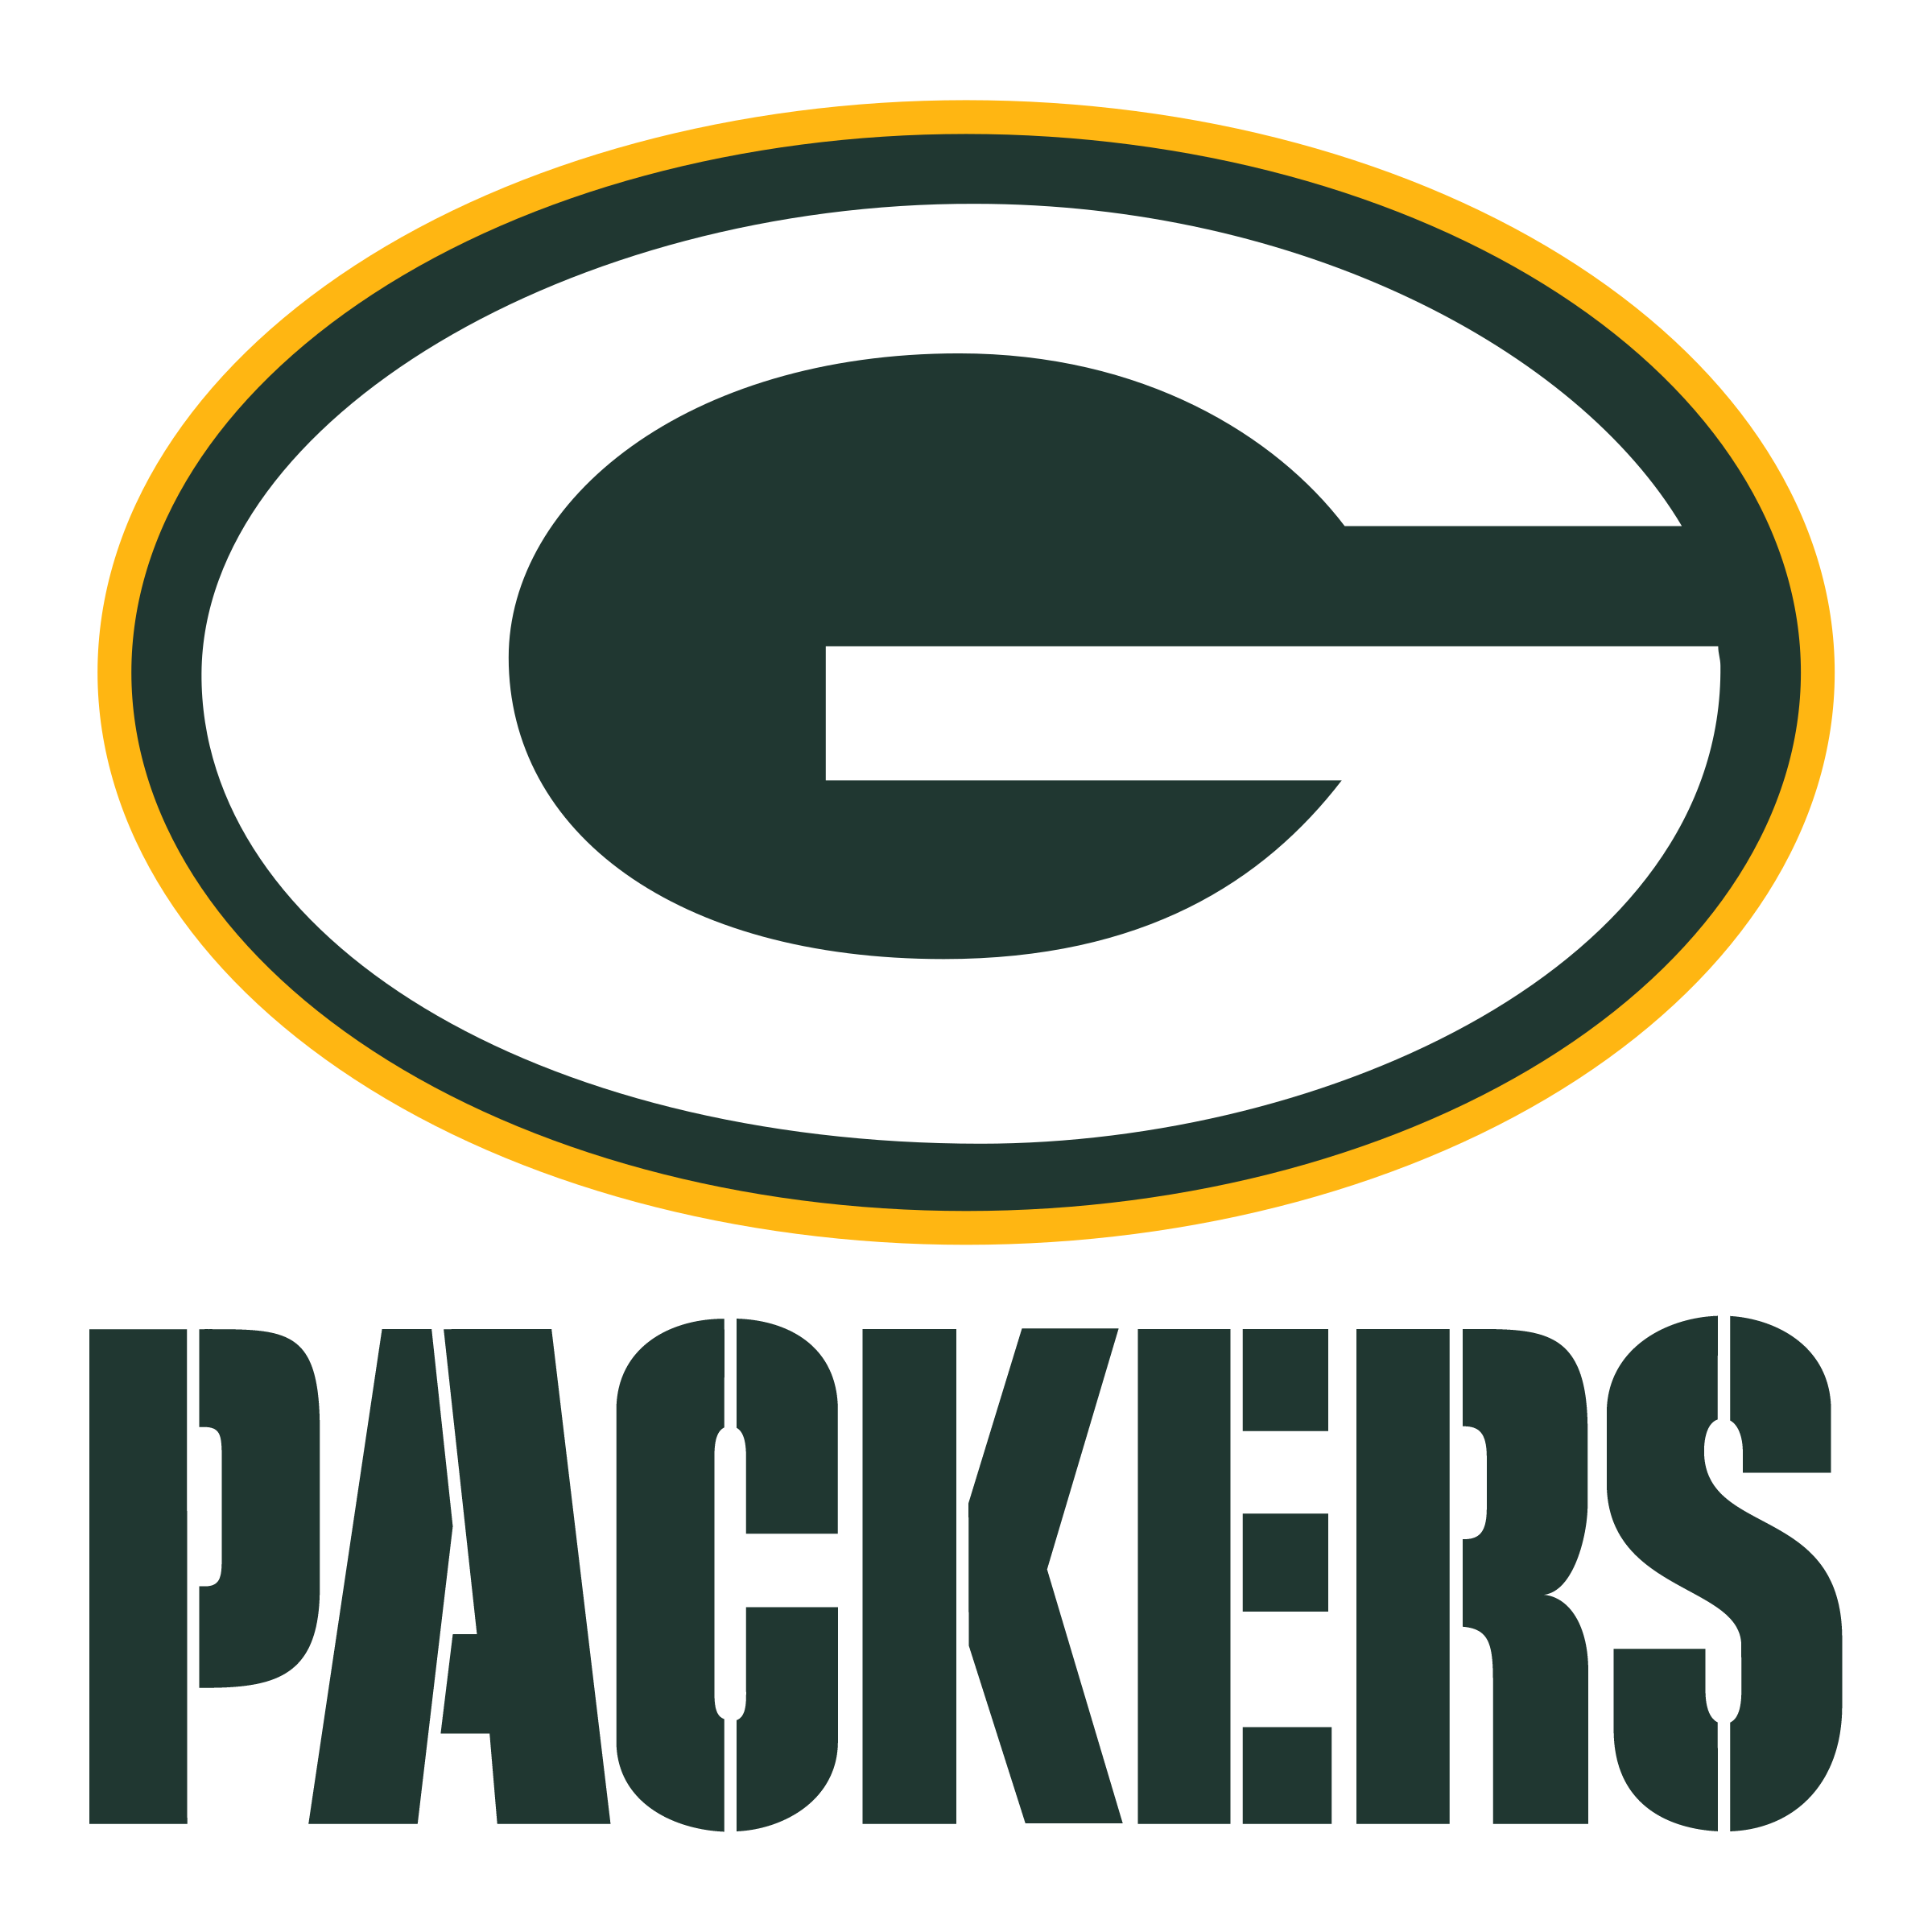 Bright image intended for green bay packers printable logo